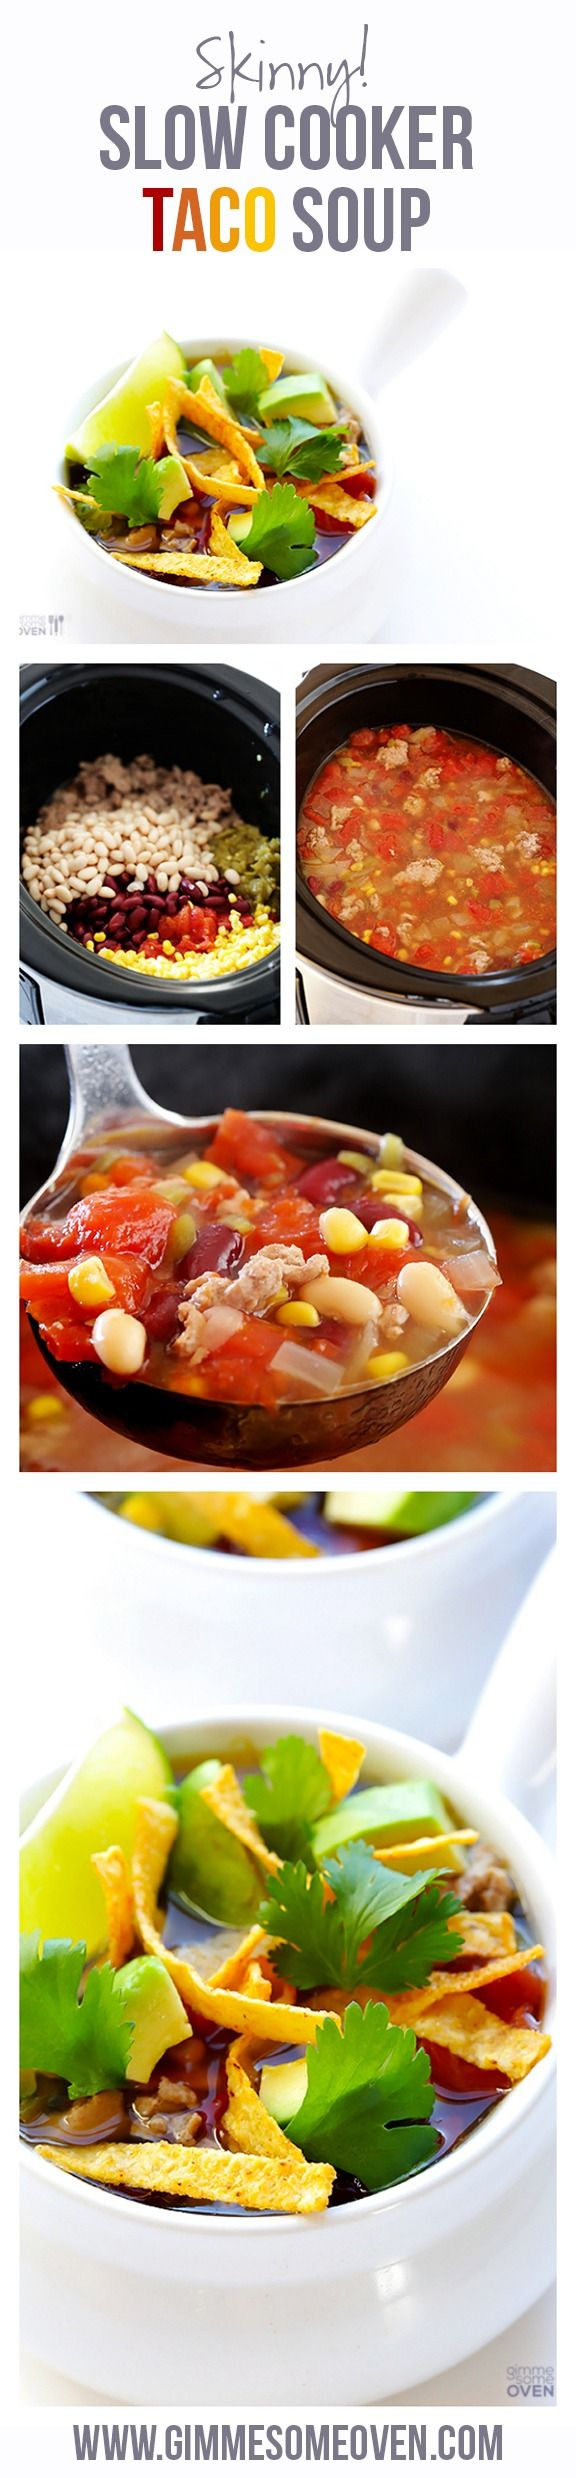 This healthy taco soup only takes MINUTES to prep, and then your slow cooker will do all the work! gimmesomeoven.com #slowcooker #crockpot #soup